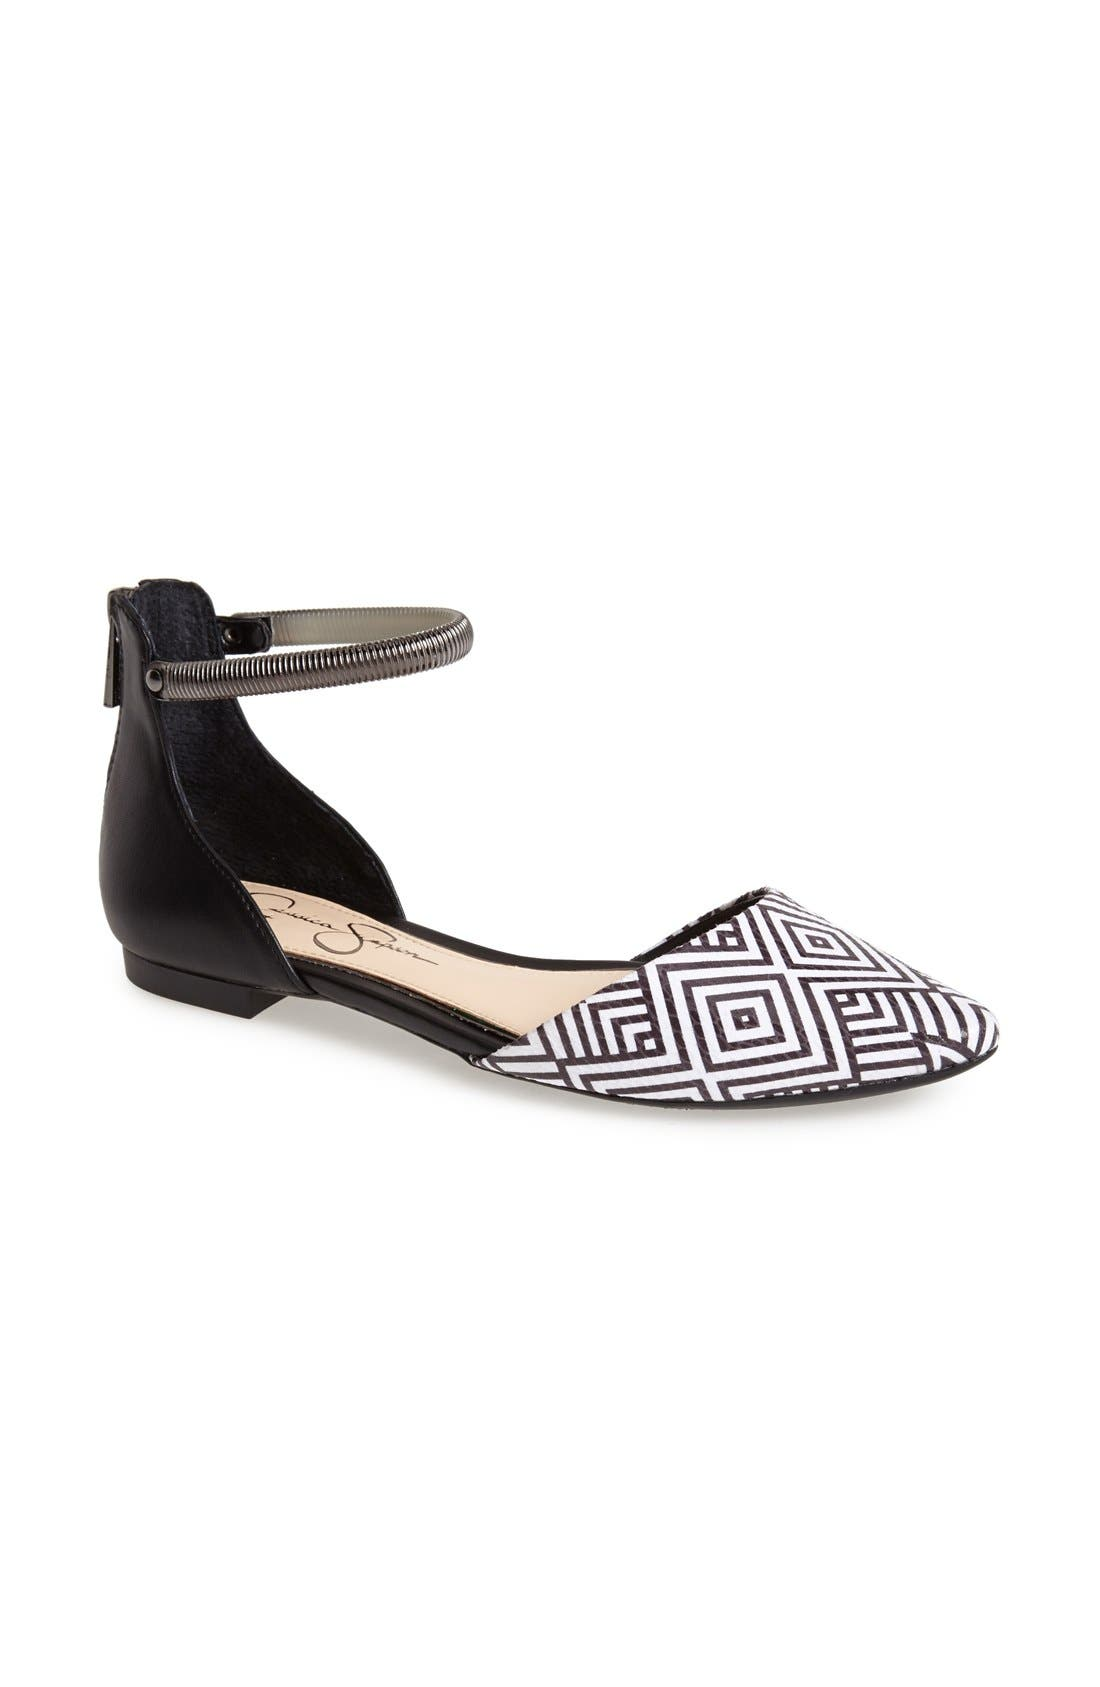 Alternate Image 1 Selected - Jessica Simpson 'Zazaa' Ankle Strap Flat (Women)